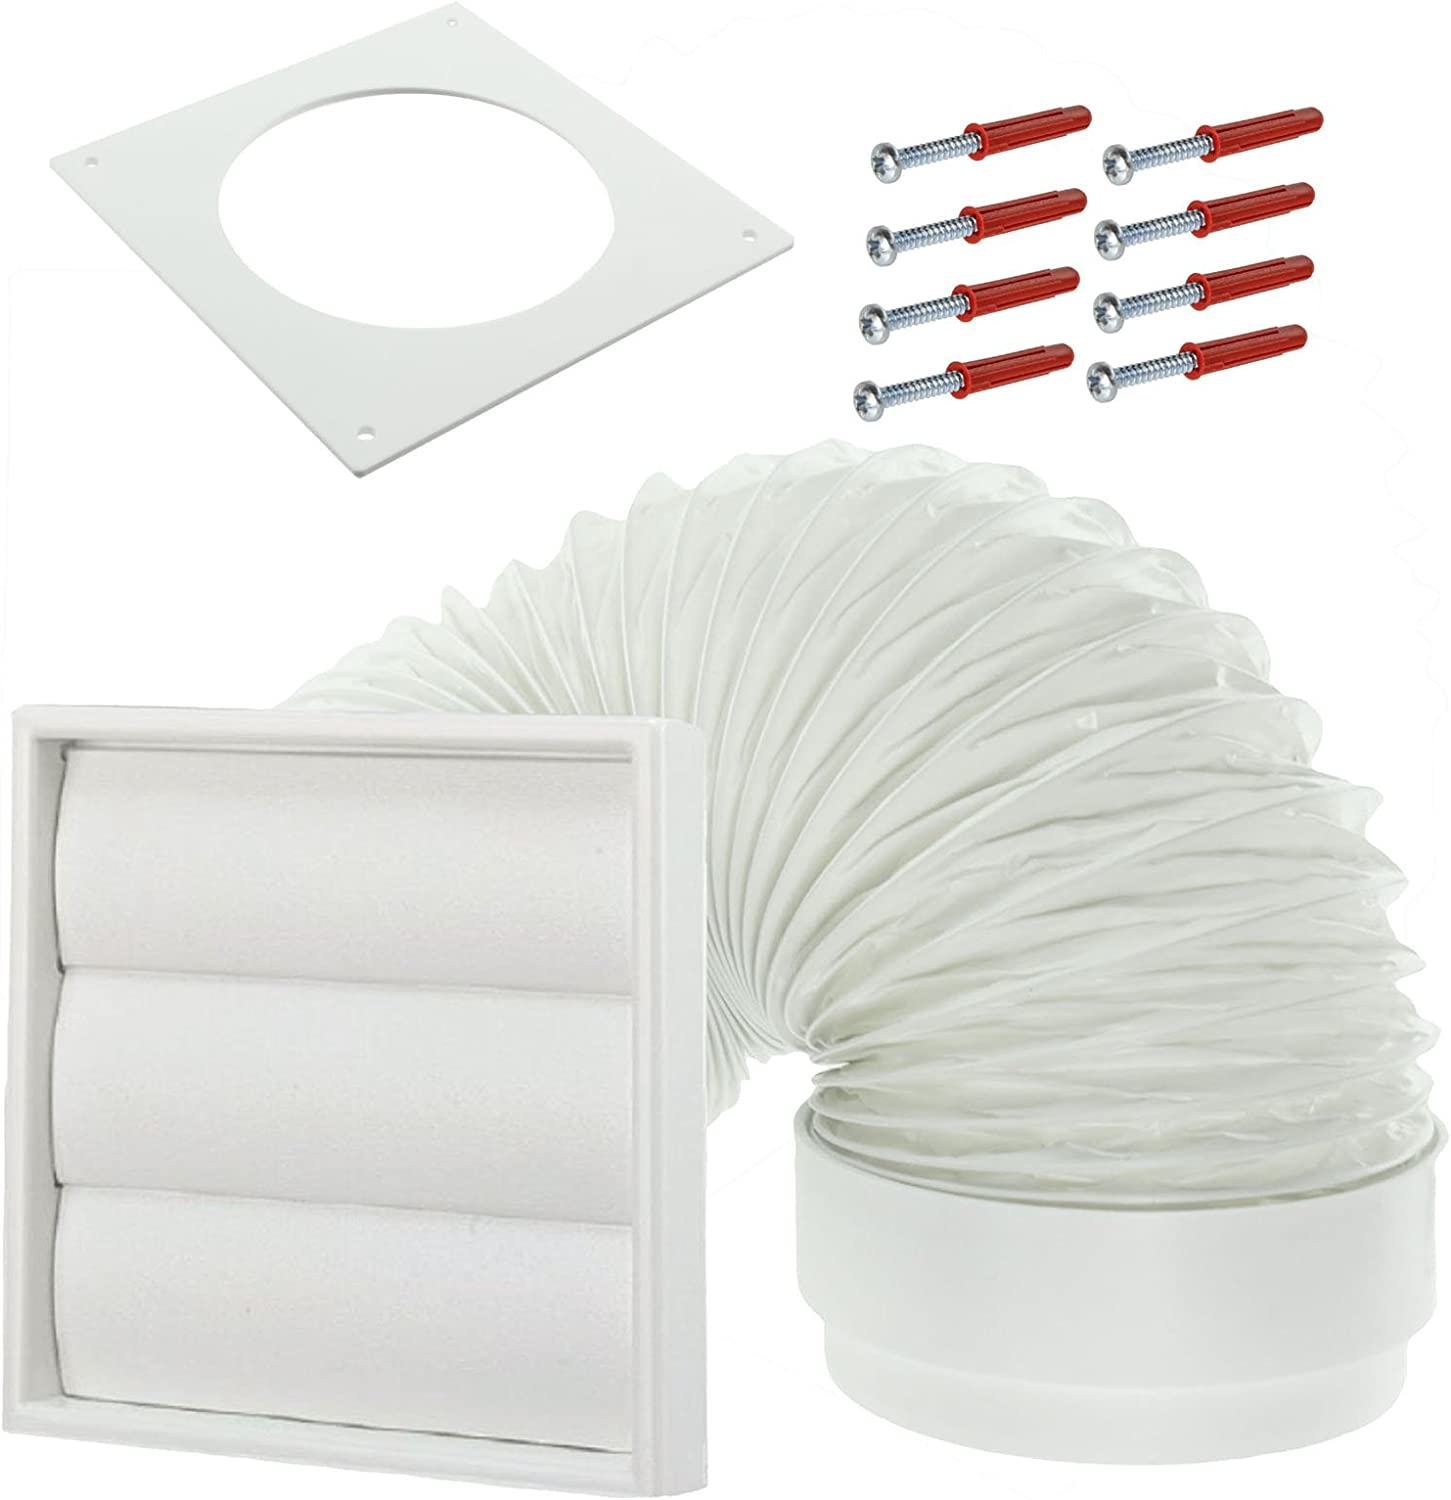 SPARES2GO Exterior Wall Venting Kit /& Extension Hose for Indesit Tumble Dryers Brown, 4 // 102mm